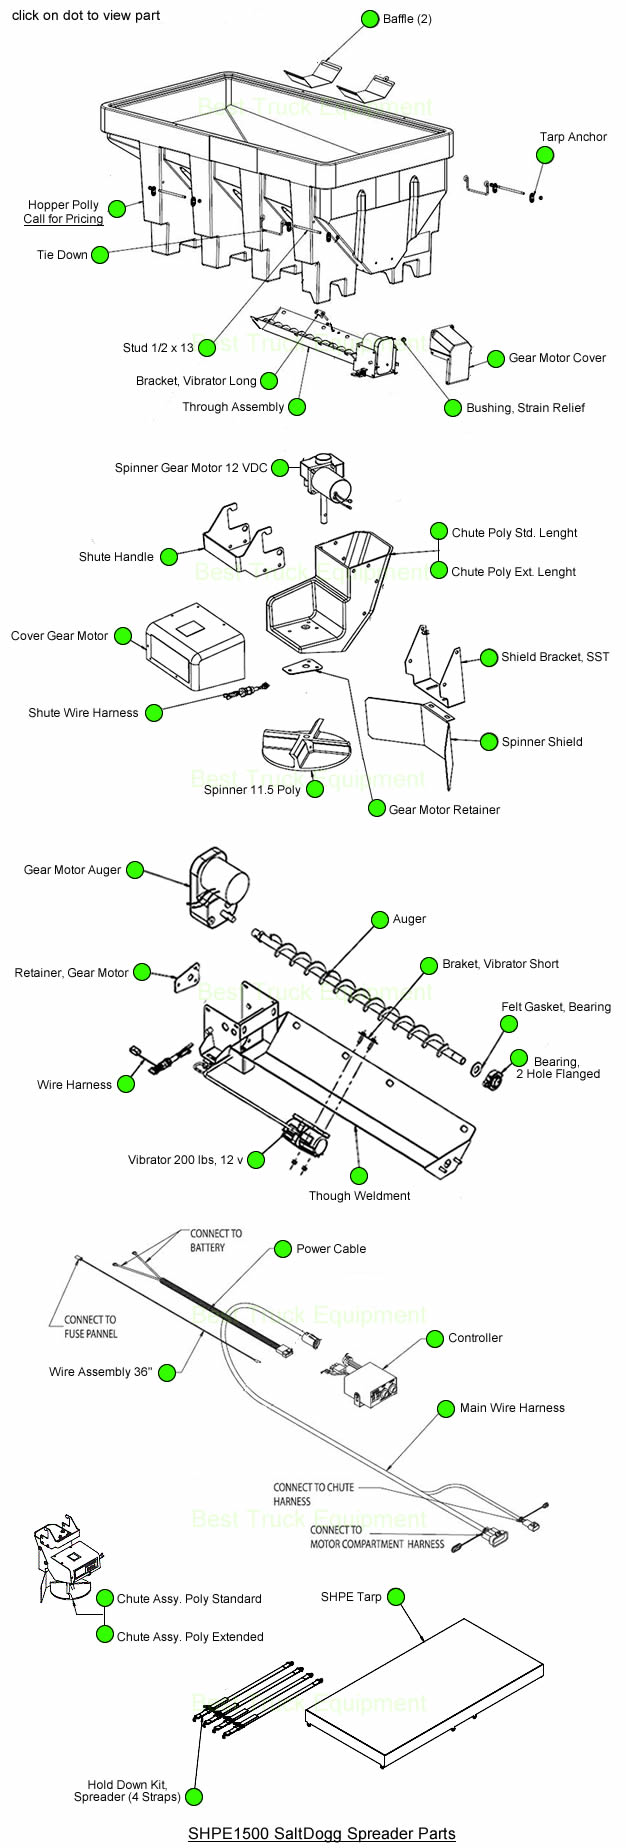 shpe2000 saltdogg shpe2000 buyers salt spreader parts by part look up diagram salt dogg wiring harness at panicattacktreatment.co